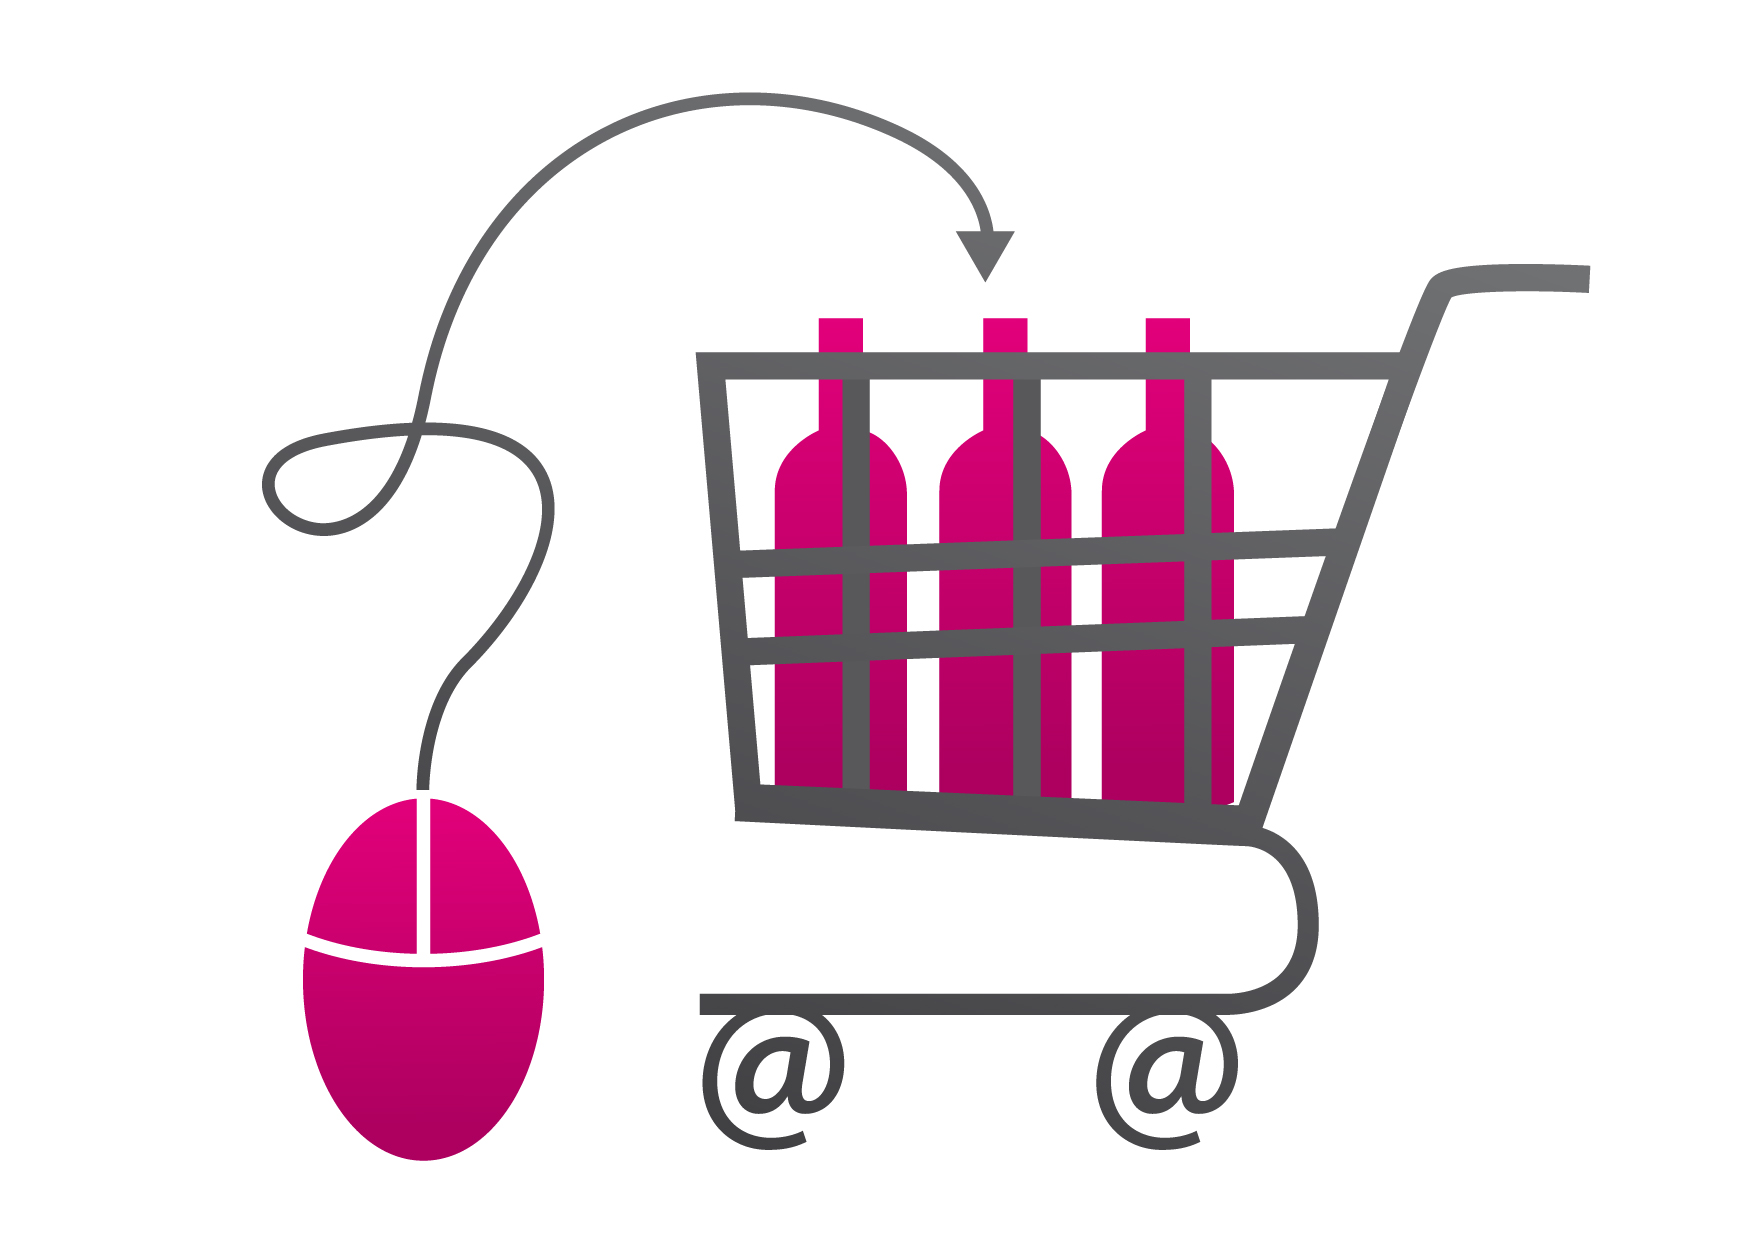 Statistique vente vin archives le blog du marketing vin for Vente de plantes sur internet